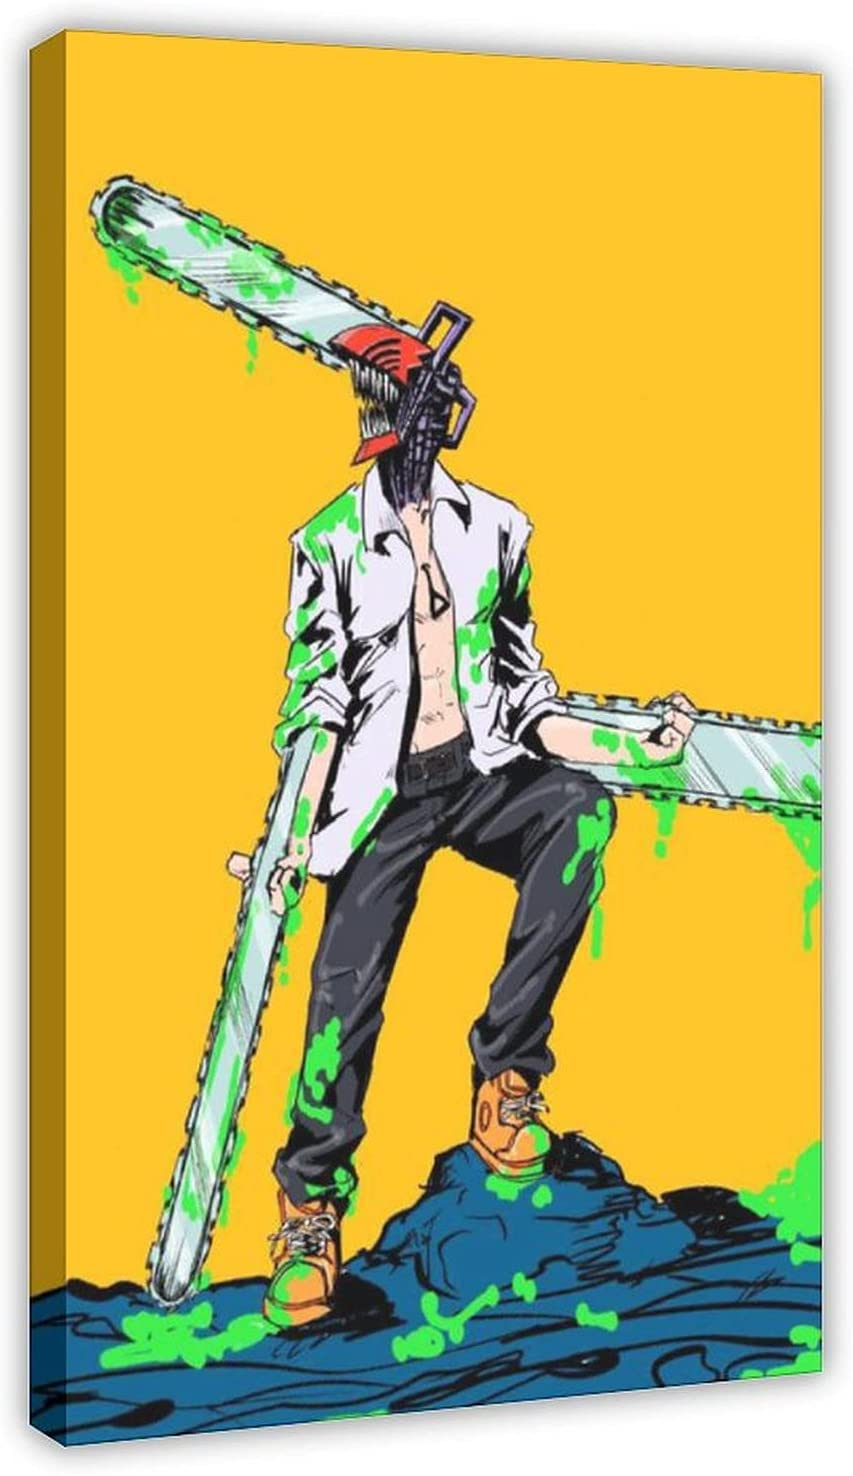 Anime Chainsaw Man 4 Canvas Poster Print Wall Price reduction National uniform free shipping Art Decor Picture